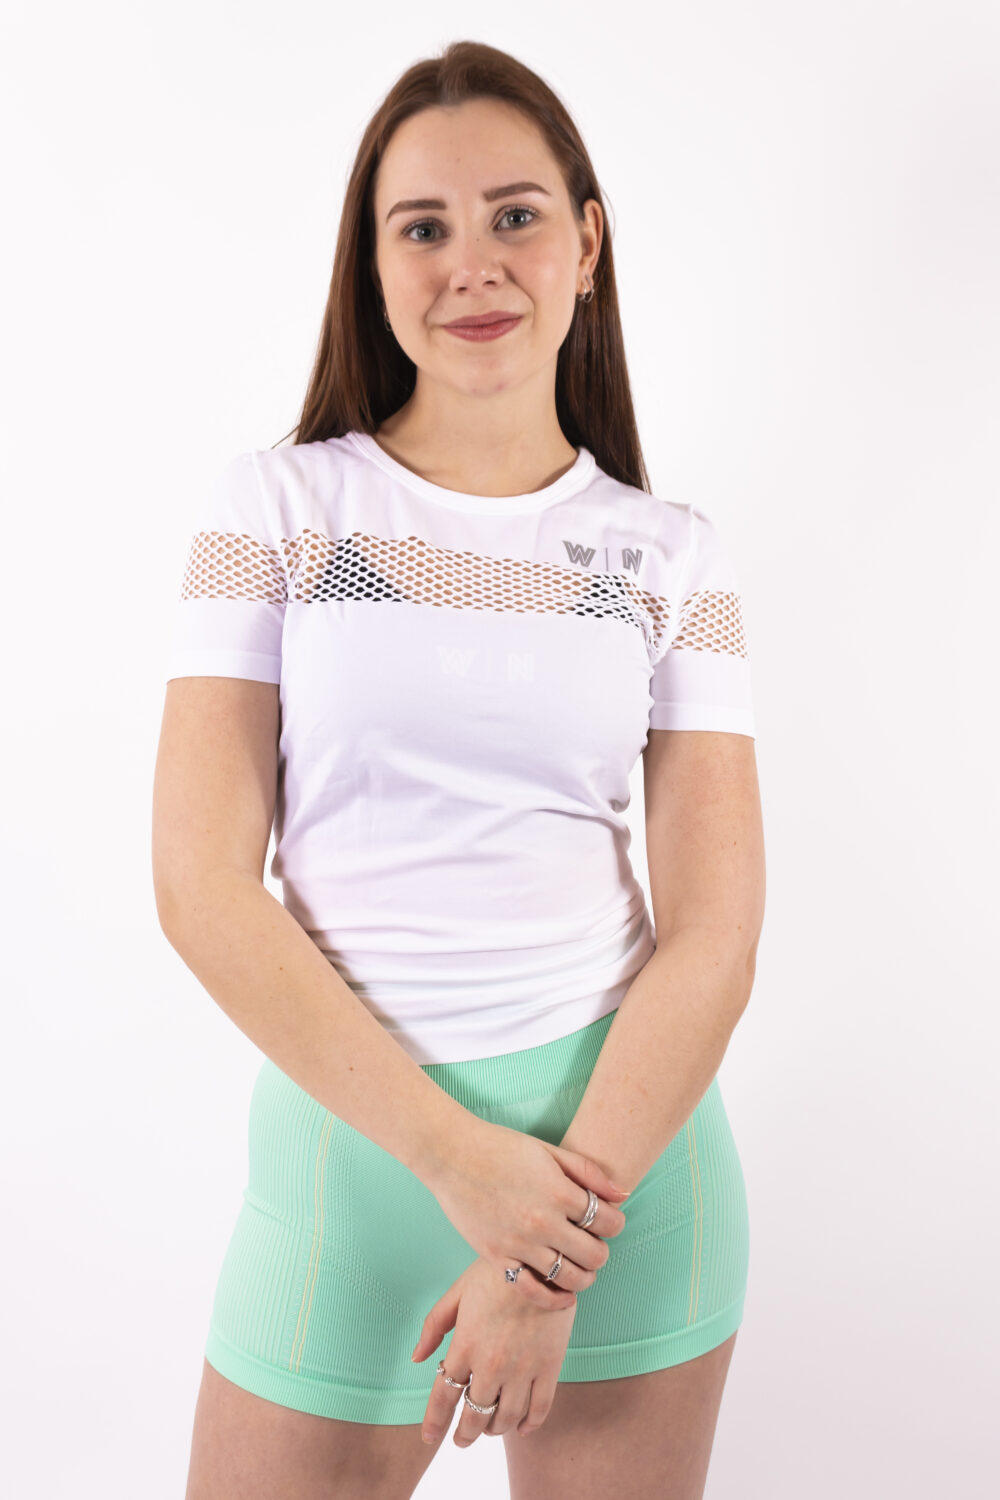 Basic white t-shirt woman nutrition